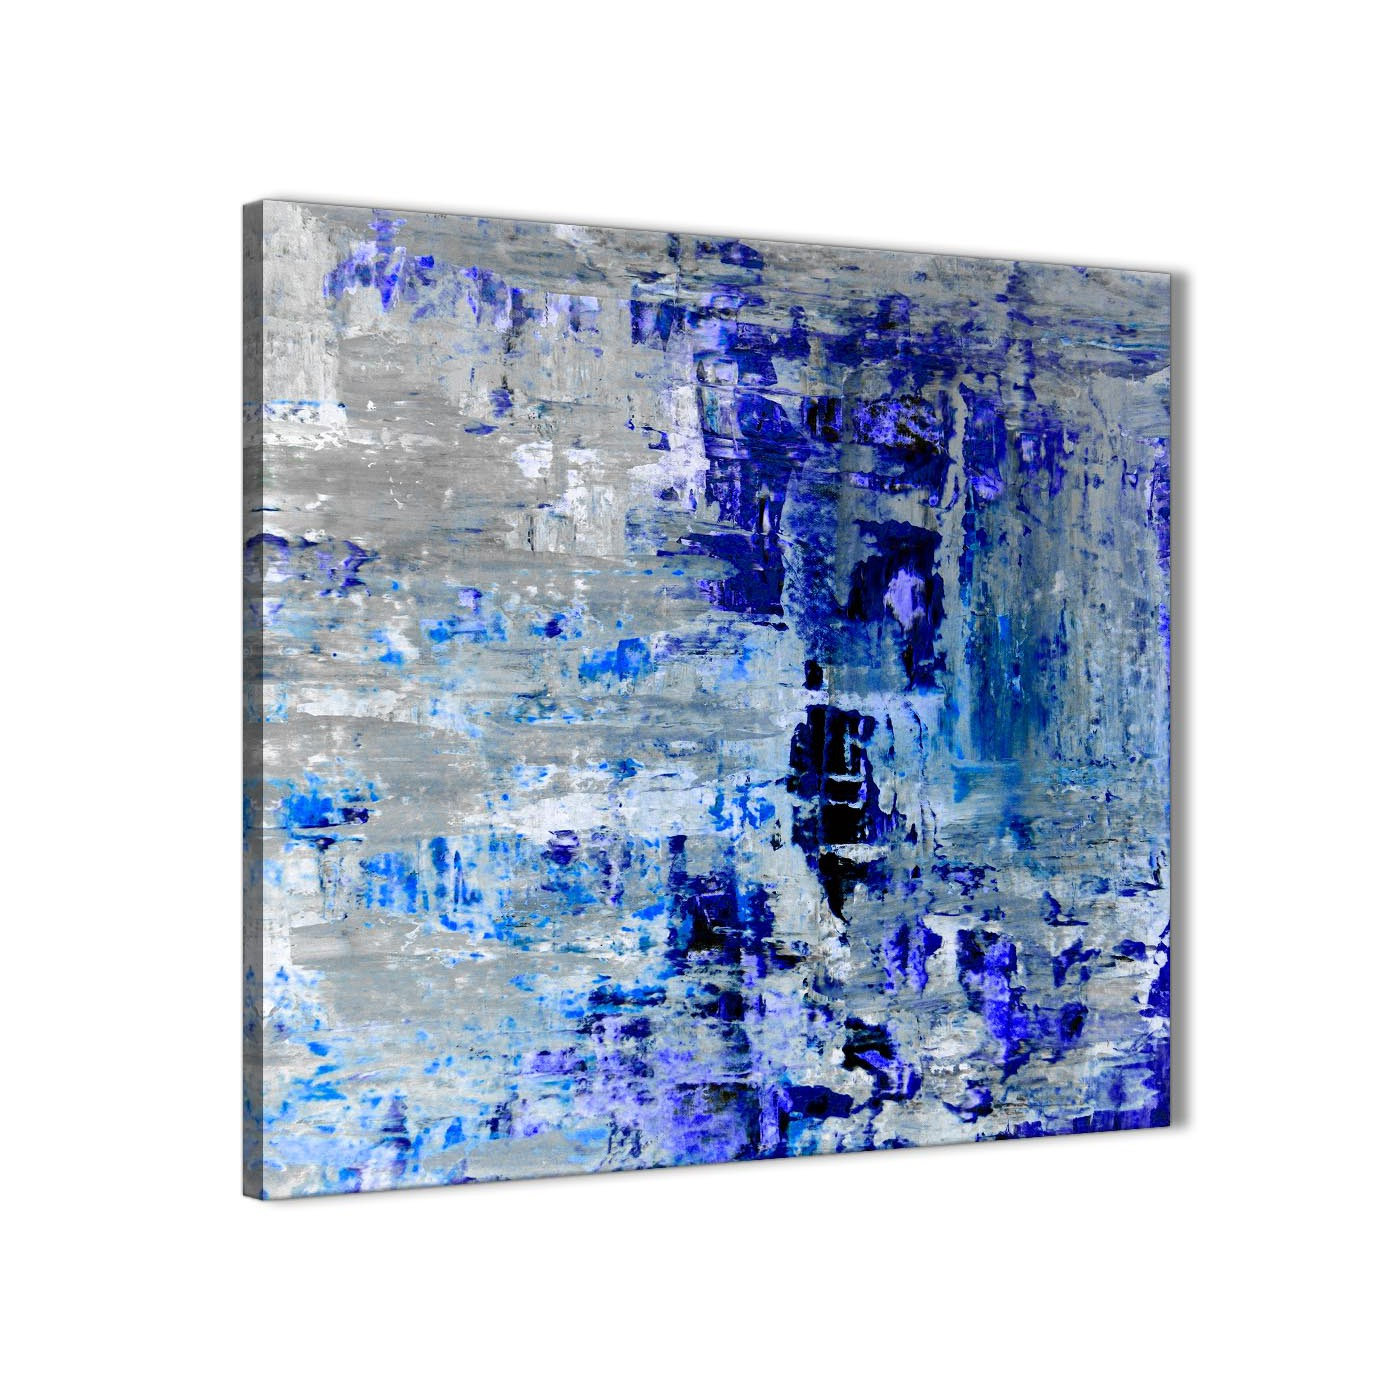 Indigo Blue Grey Abstract Painting Wall Art Print Canvas